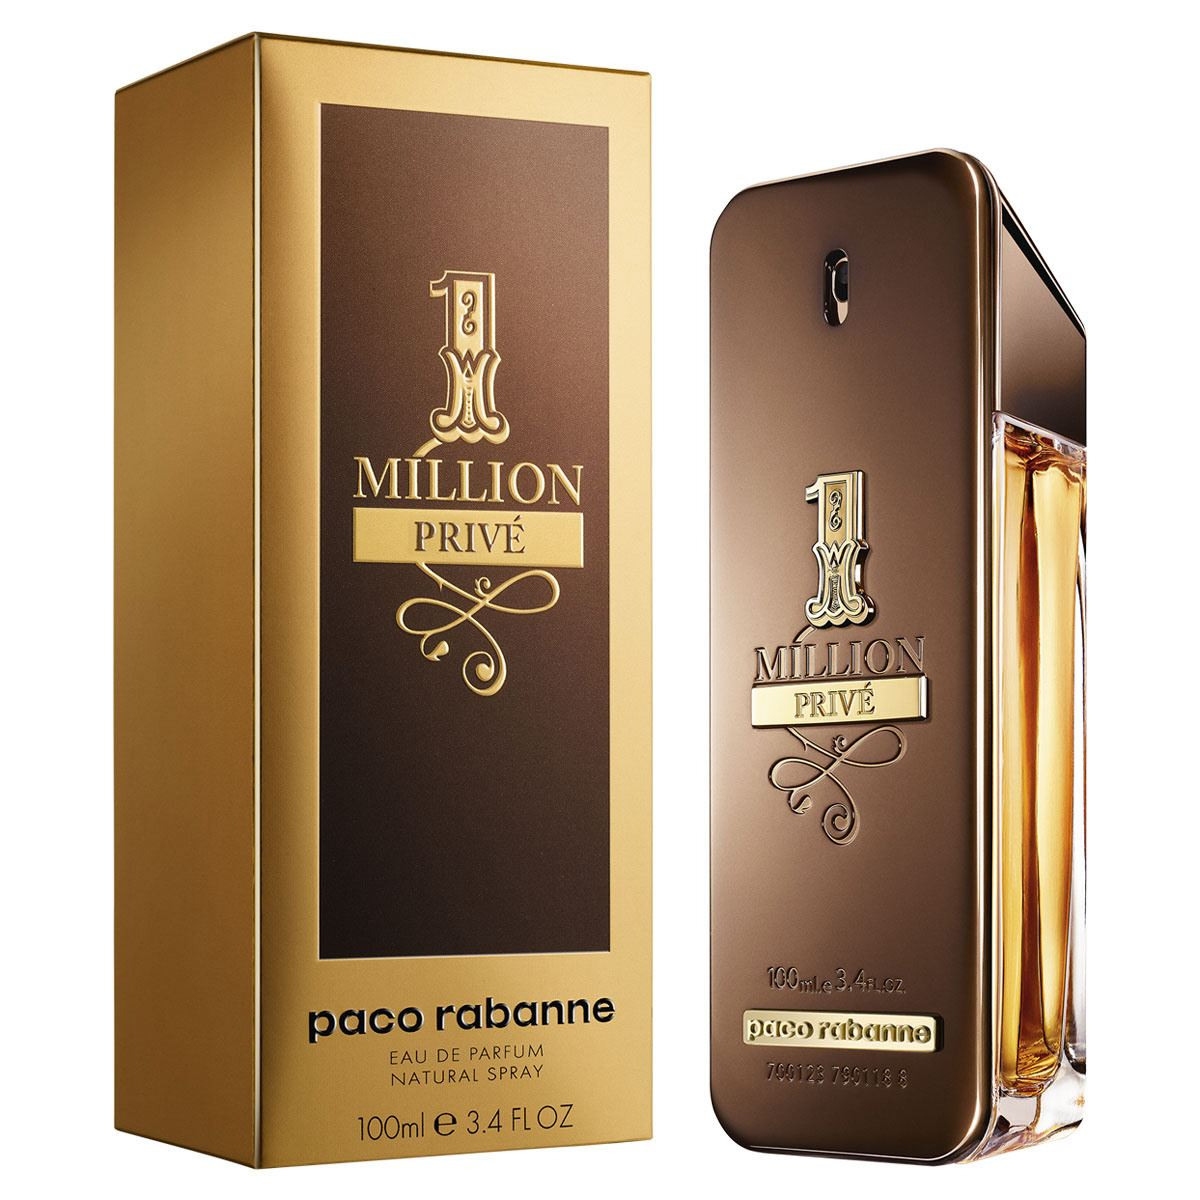 Fragancia para caballero paco rabanne 1 million privé edp 100 ml  - Sanborns